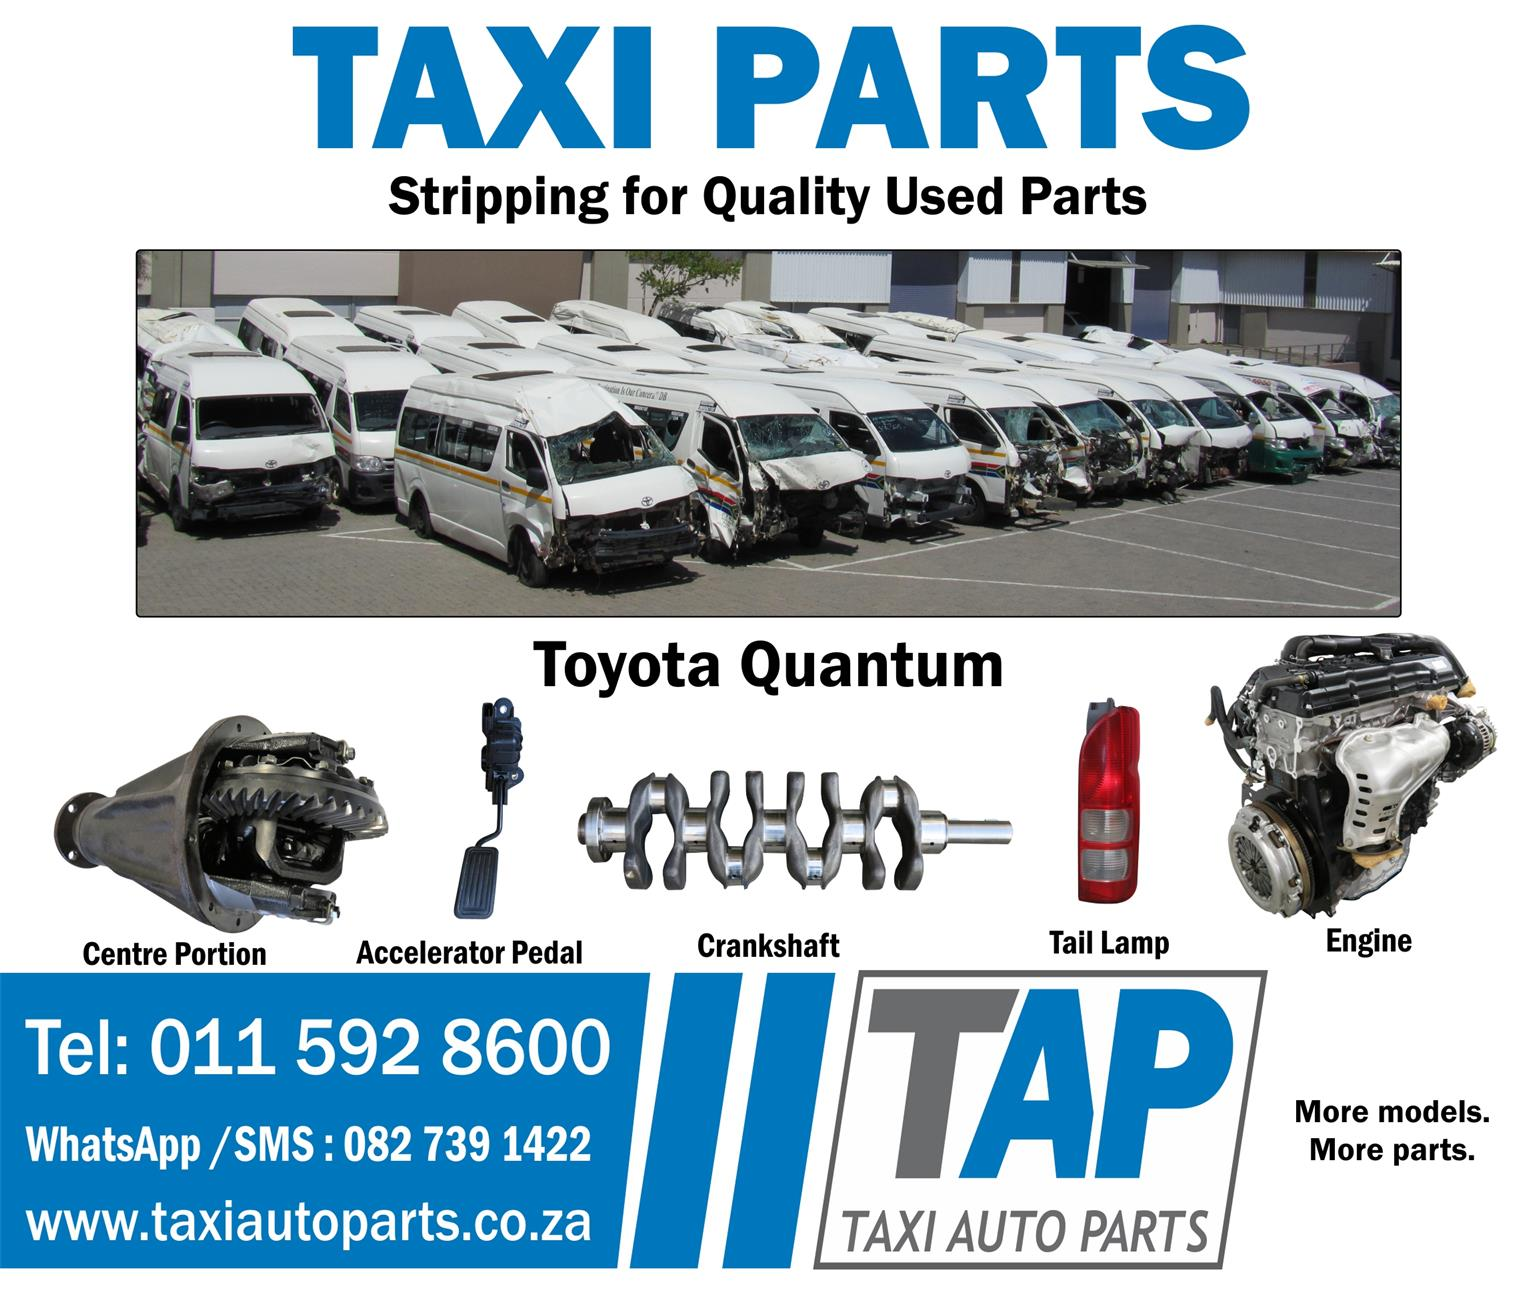 Stripping for Quality Used Parts at Taxi Auto Parts - TAP